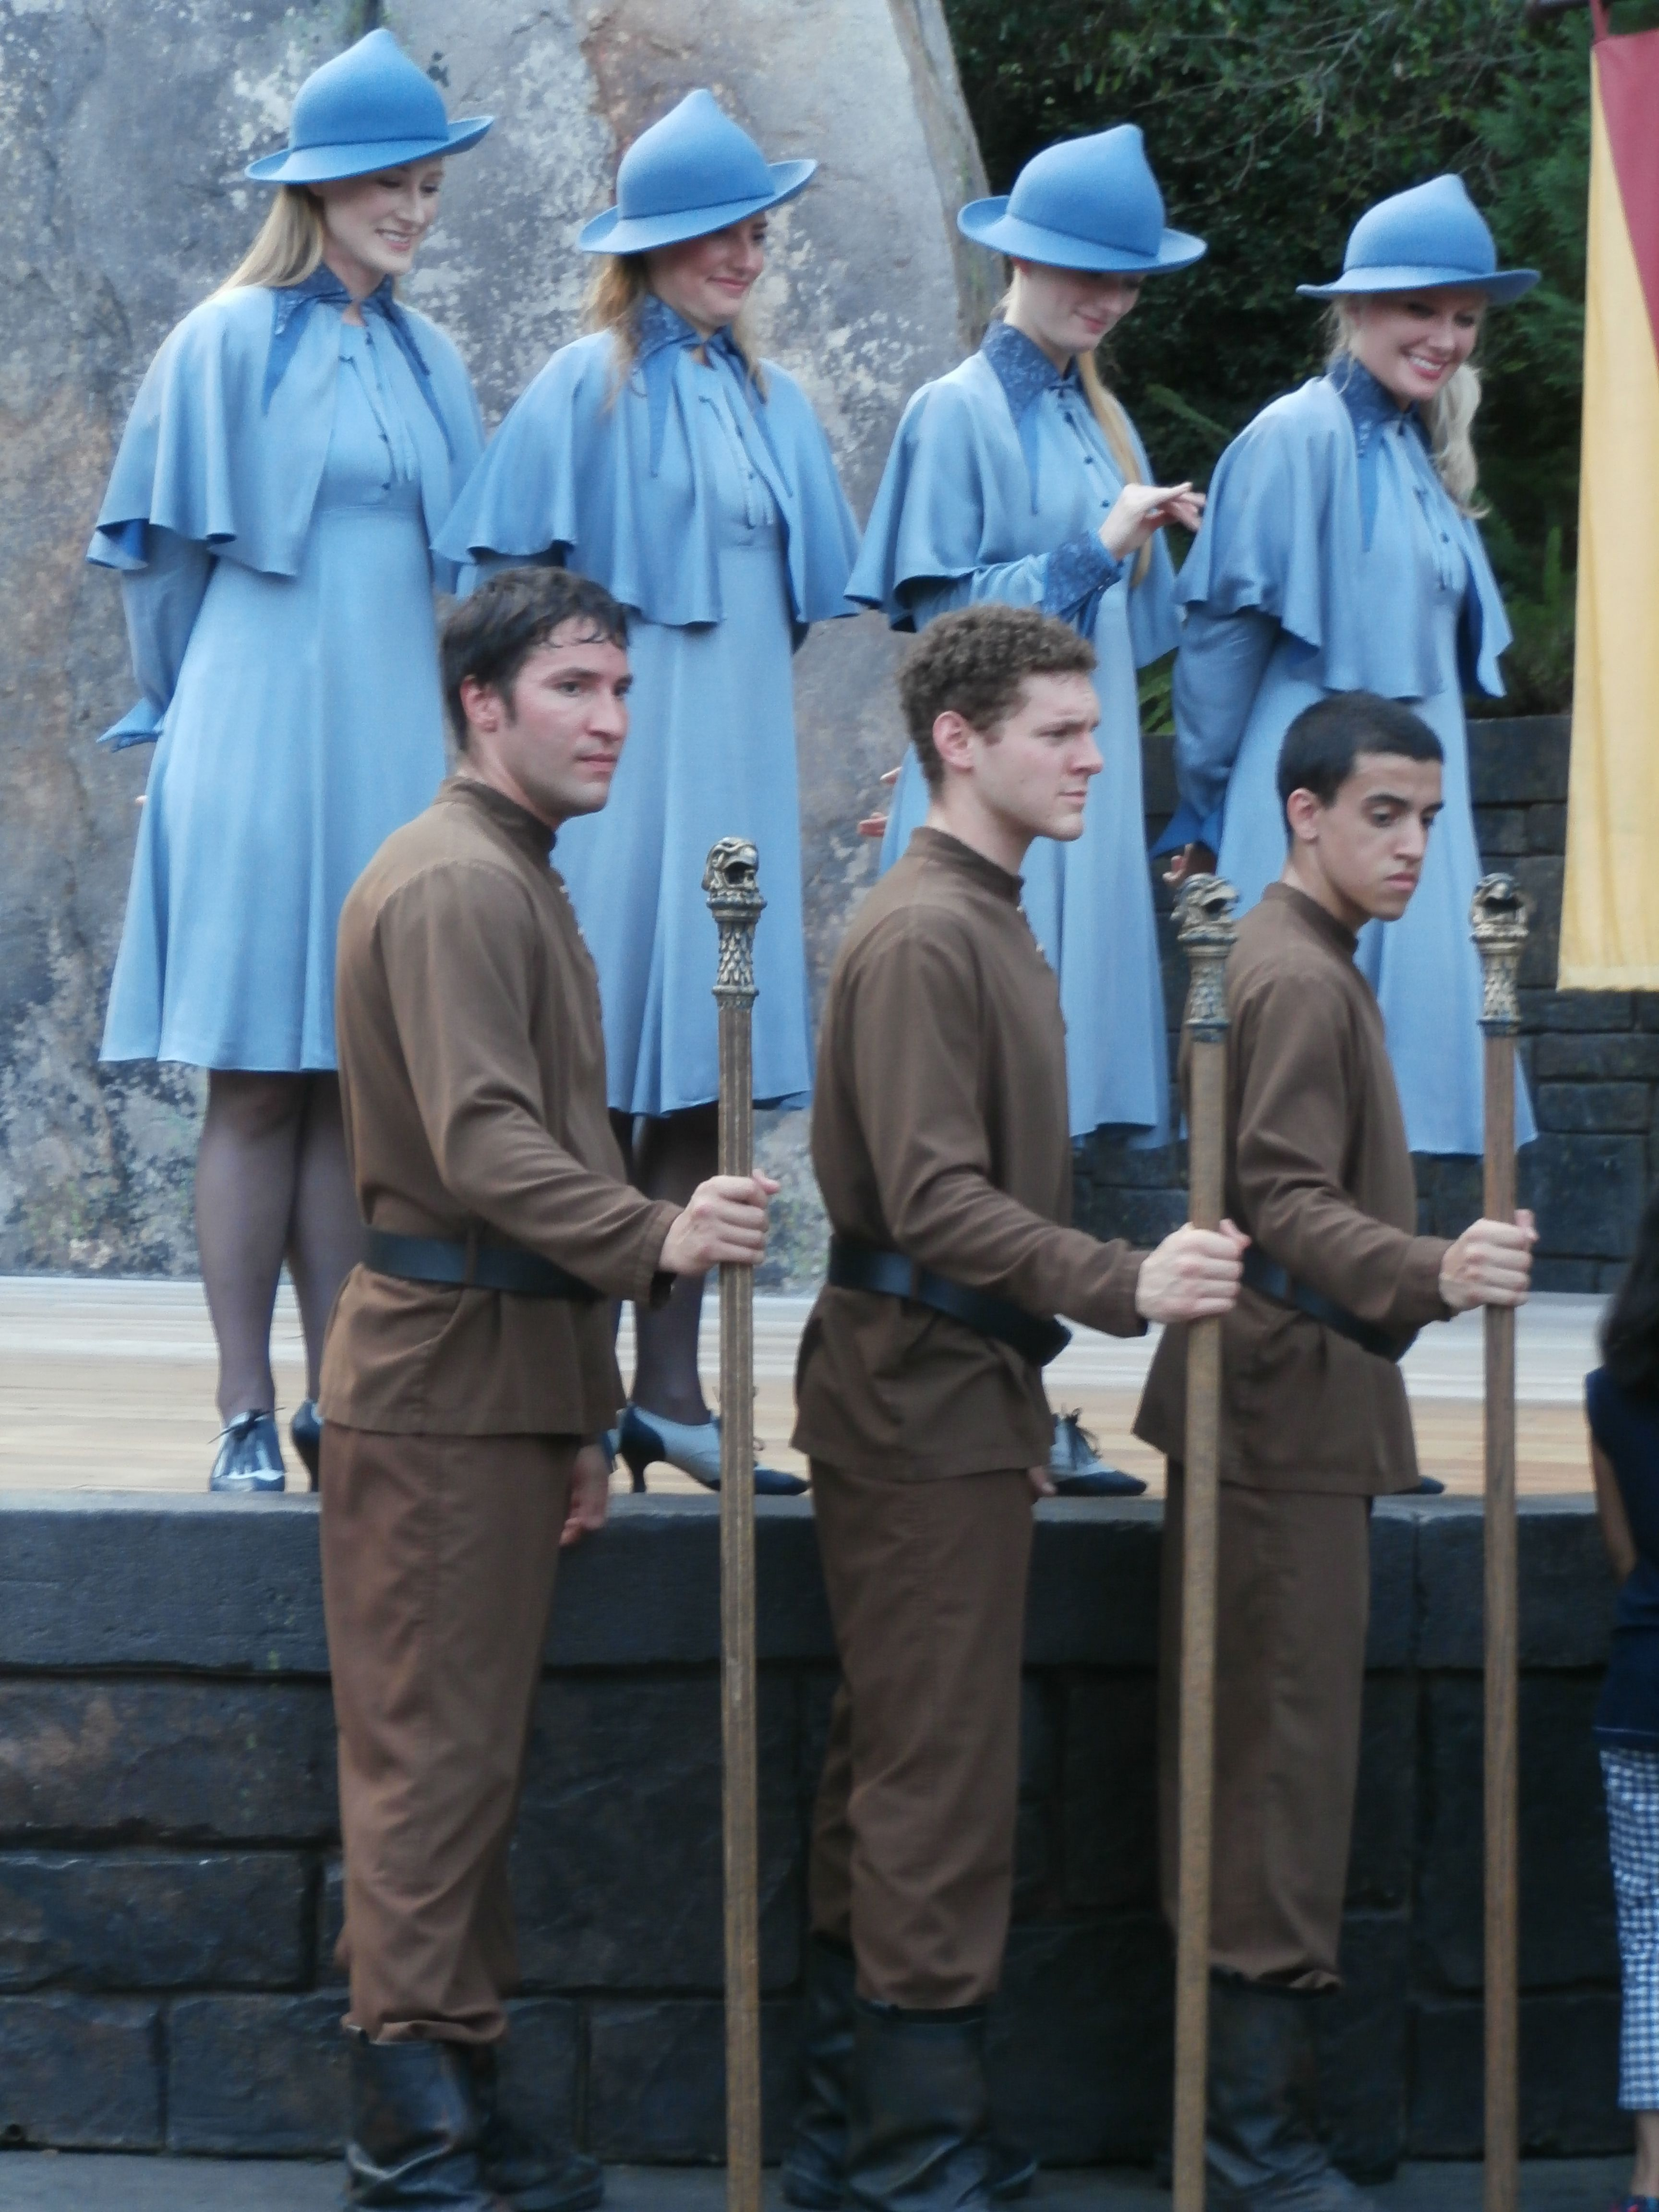 Tmn Durmstrang And Beauxbatons At Harry Potter Orlando Florida Harry Potter Outfits Harry Potter Orlando Harry Potter Yule ball crossover canada goose jackets character design winter jackets stairs cosplay costumes boys. pinterest